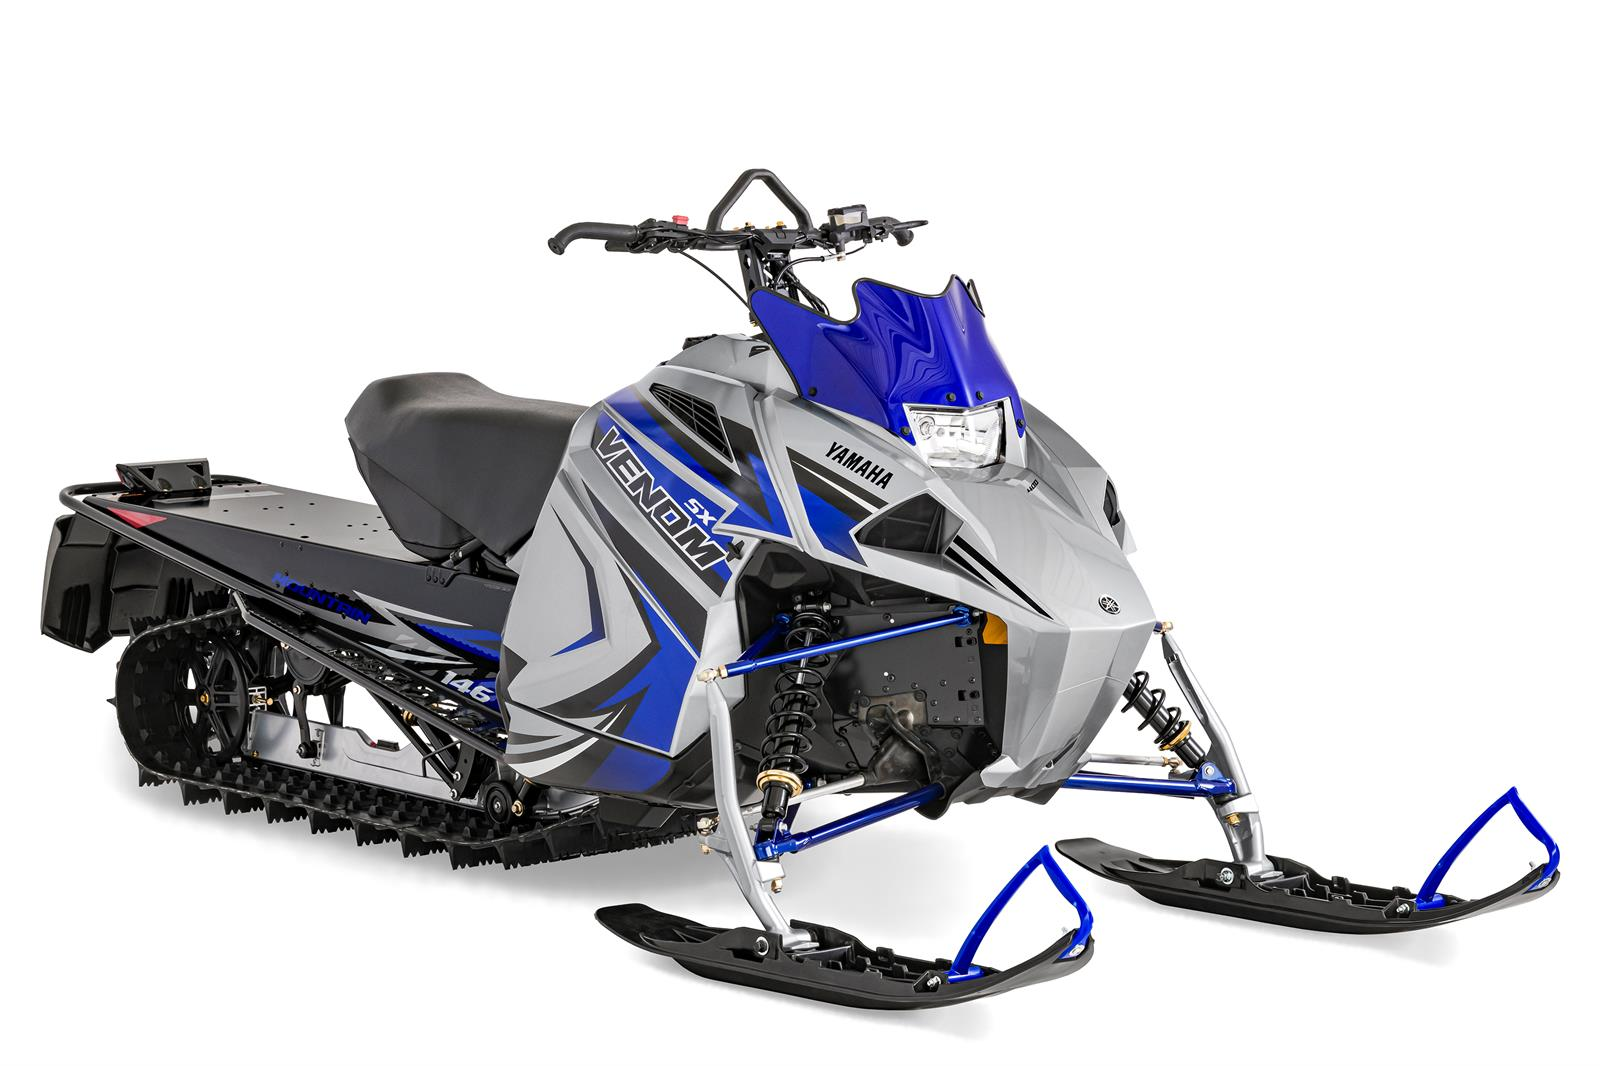 2022 Yamaha SXVenom Mountain in Greenland, Michigan - Photo 2